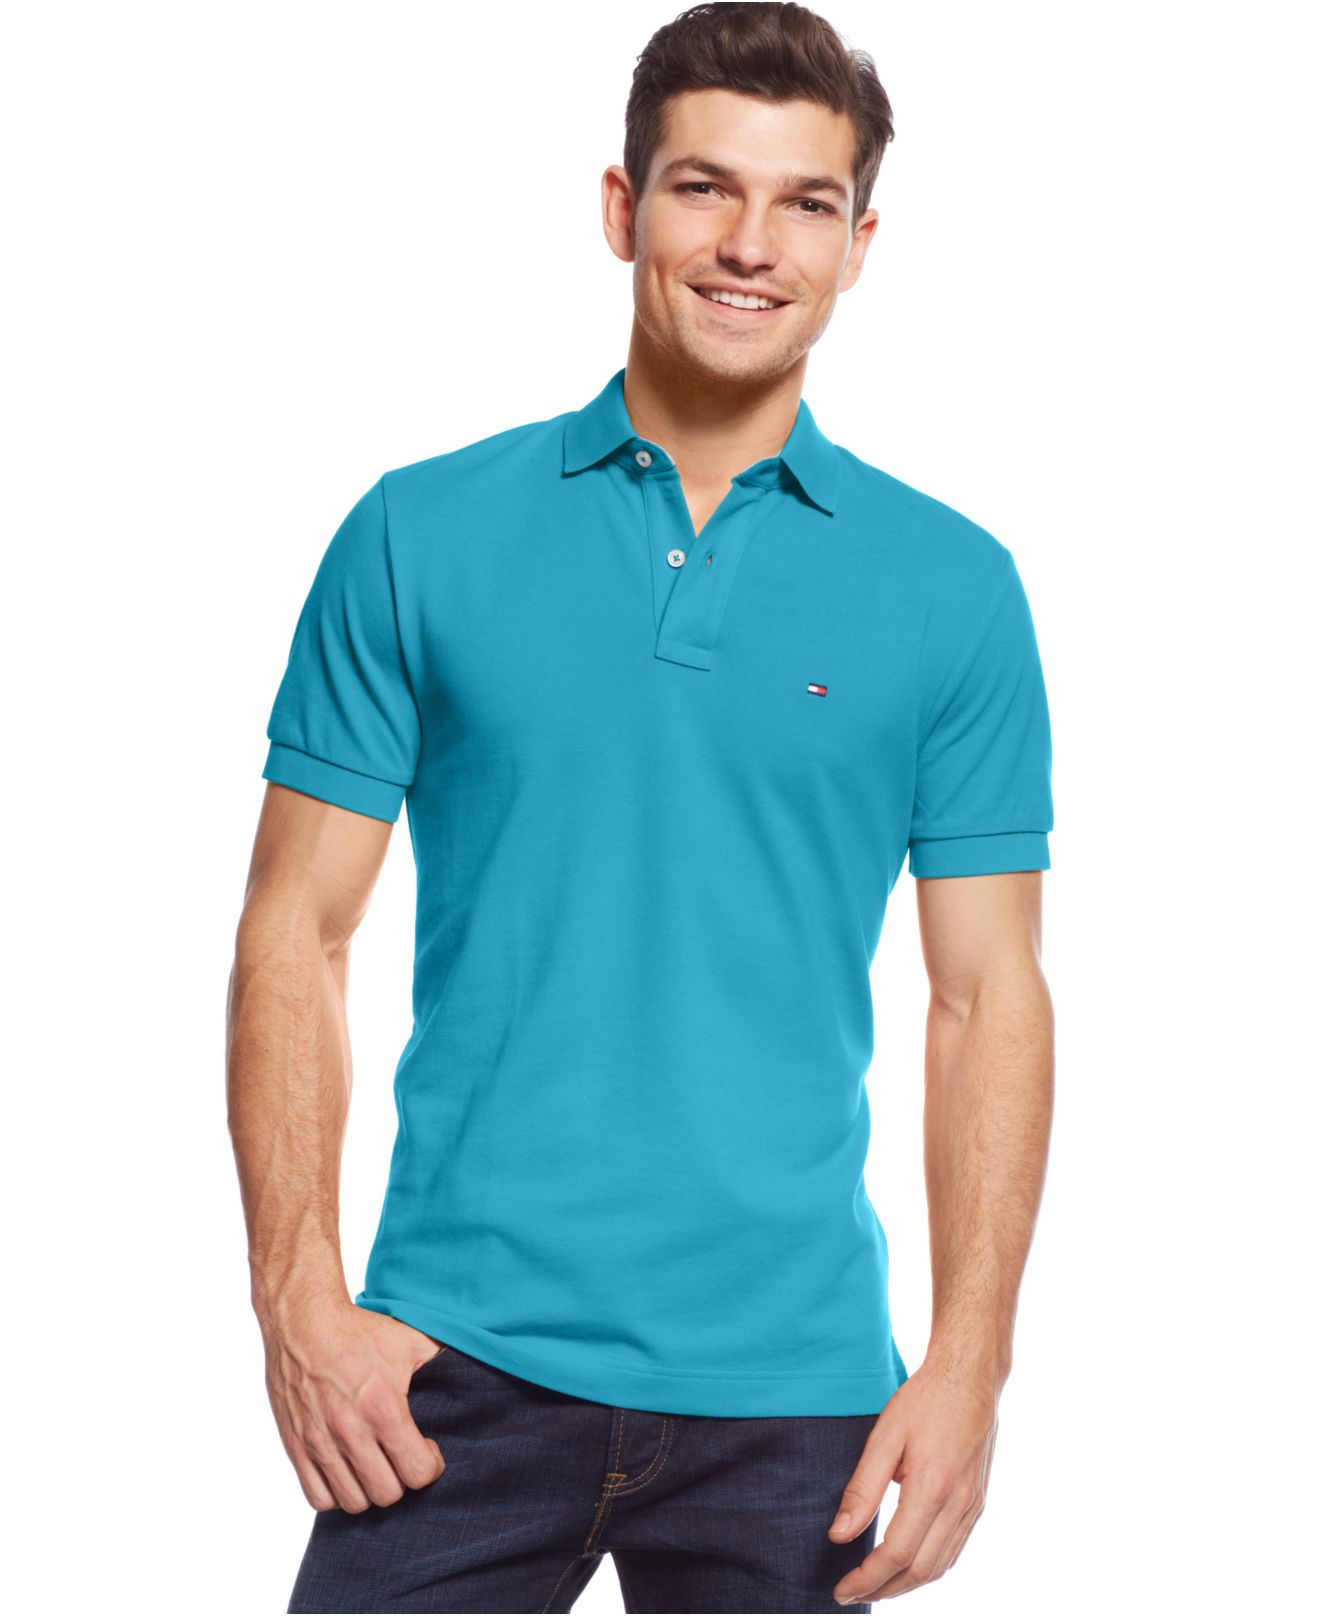 ef85d3a3 Tommy Hilfiger Custom-Fit Ivy Polo in Green for Men - Lyst